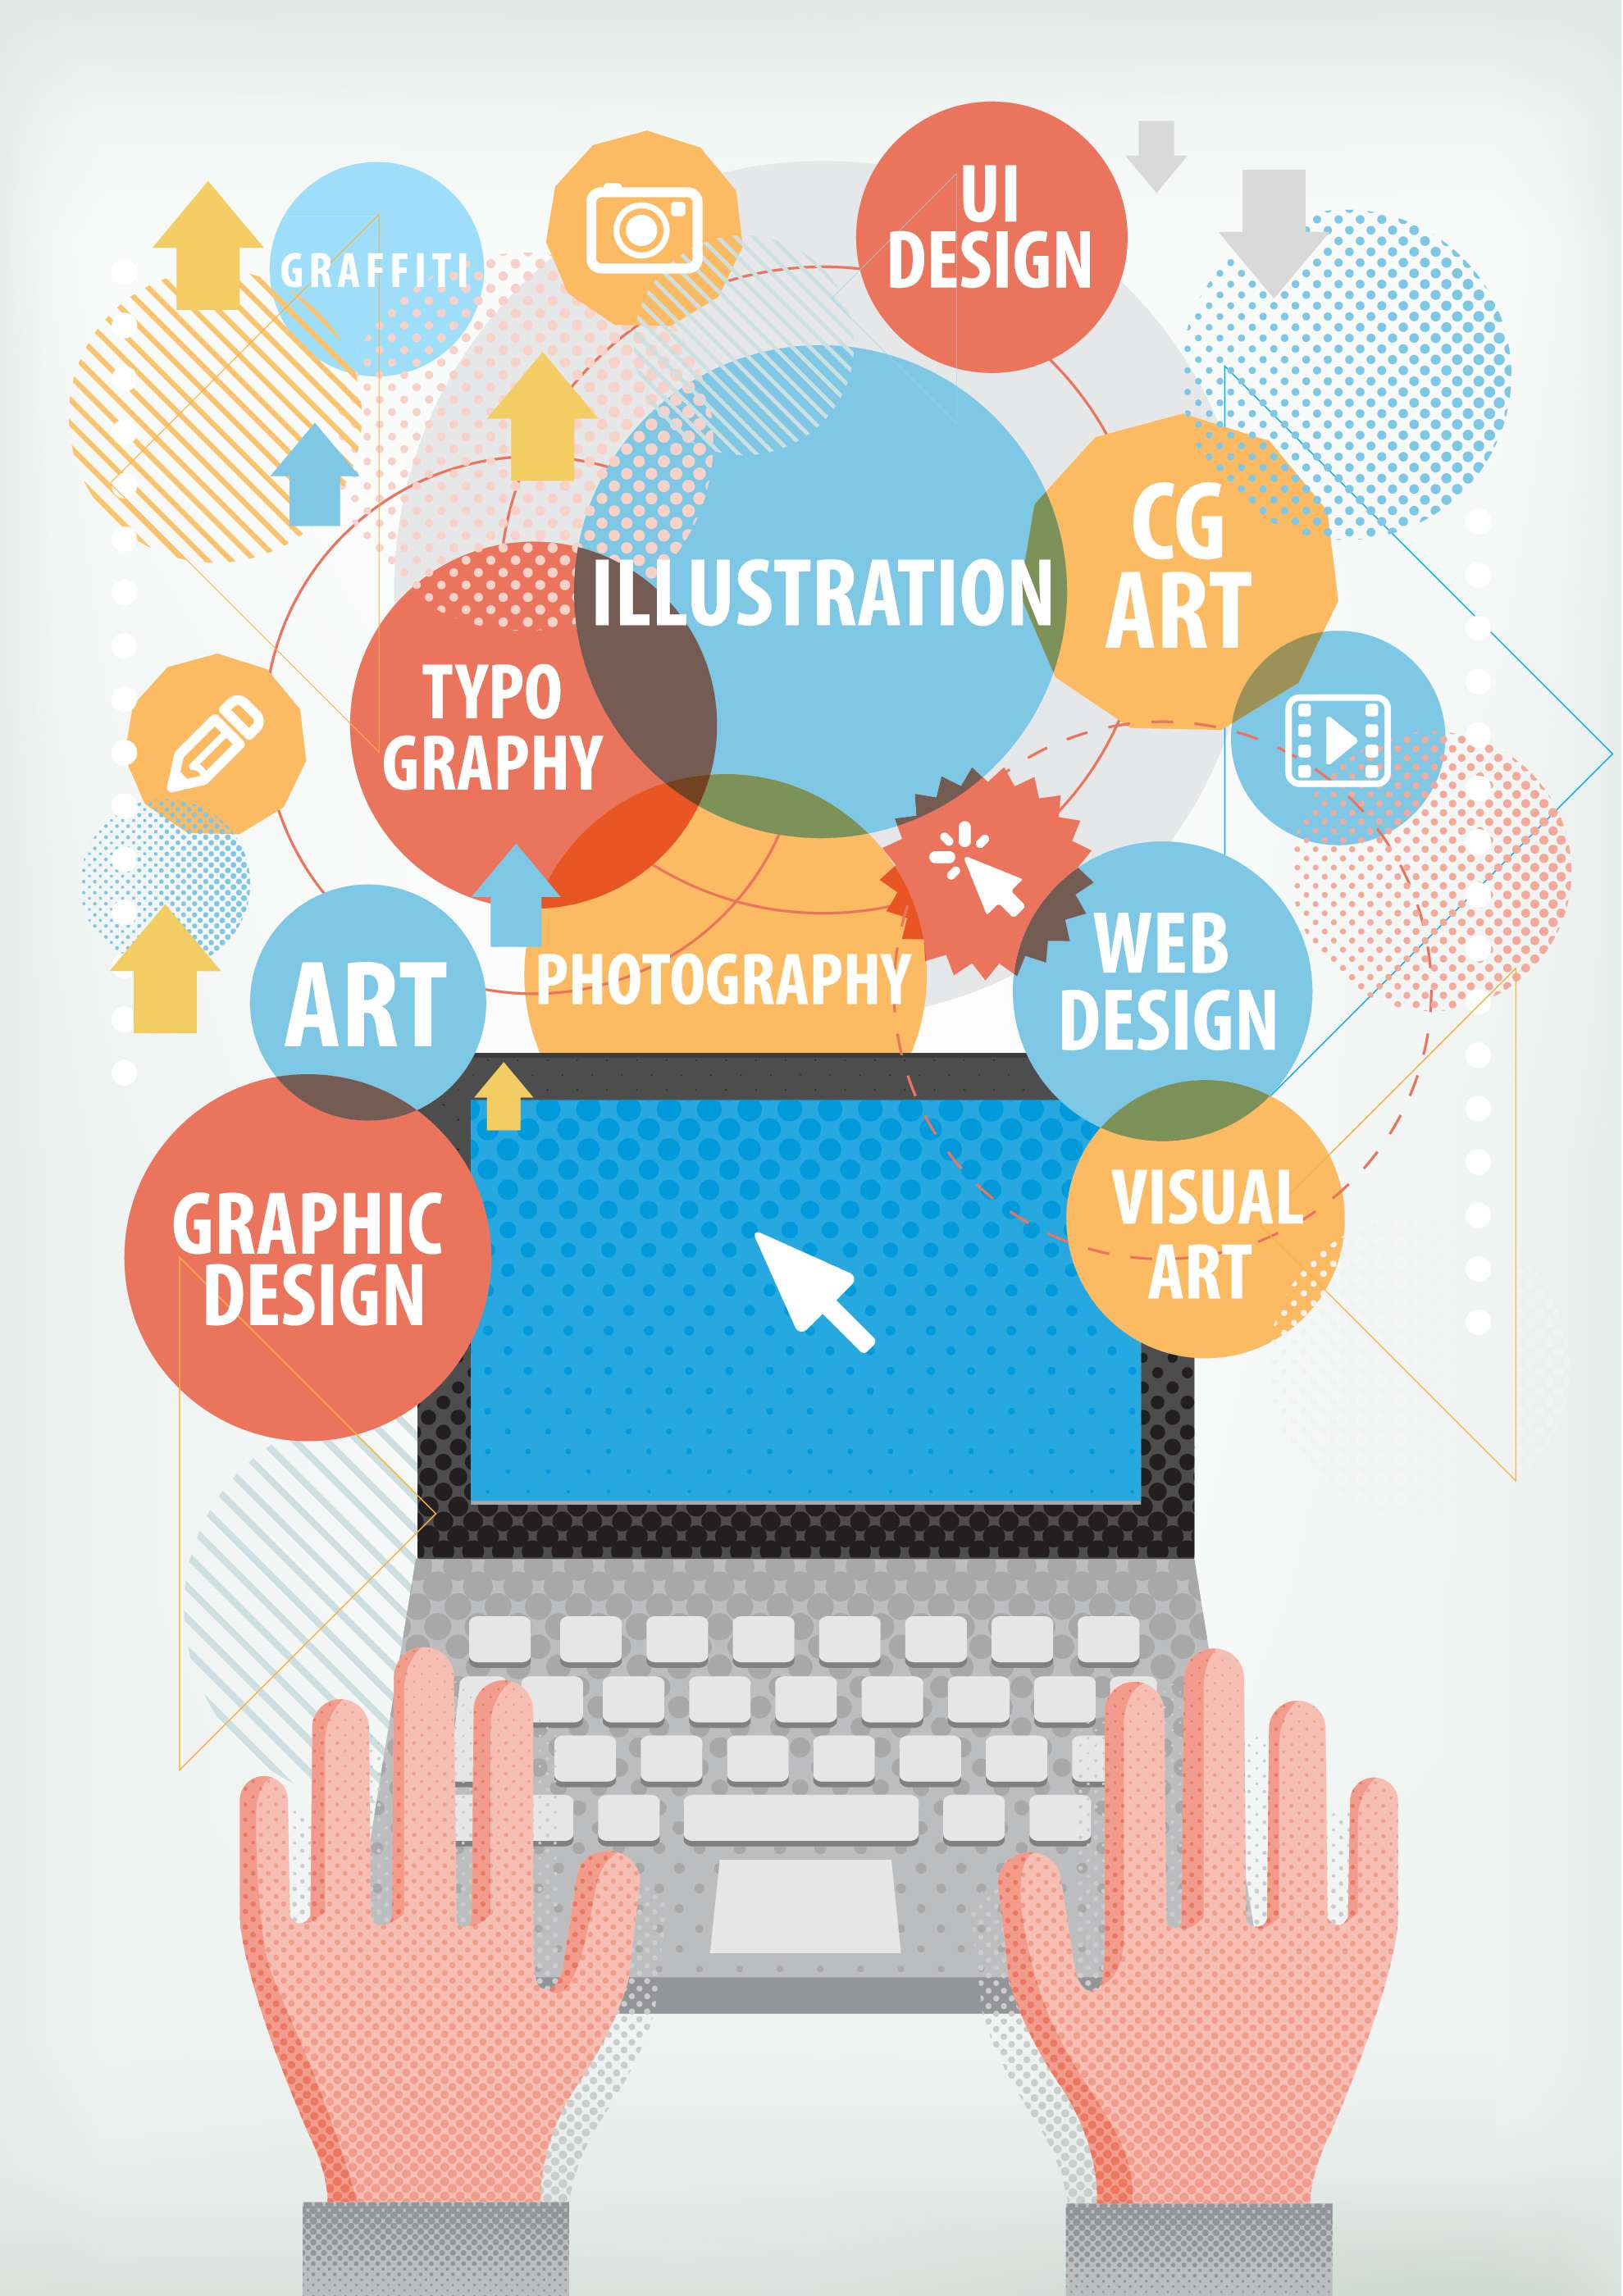 What Qualifications Are Required To Become A Graphic Designer?